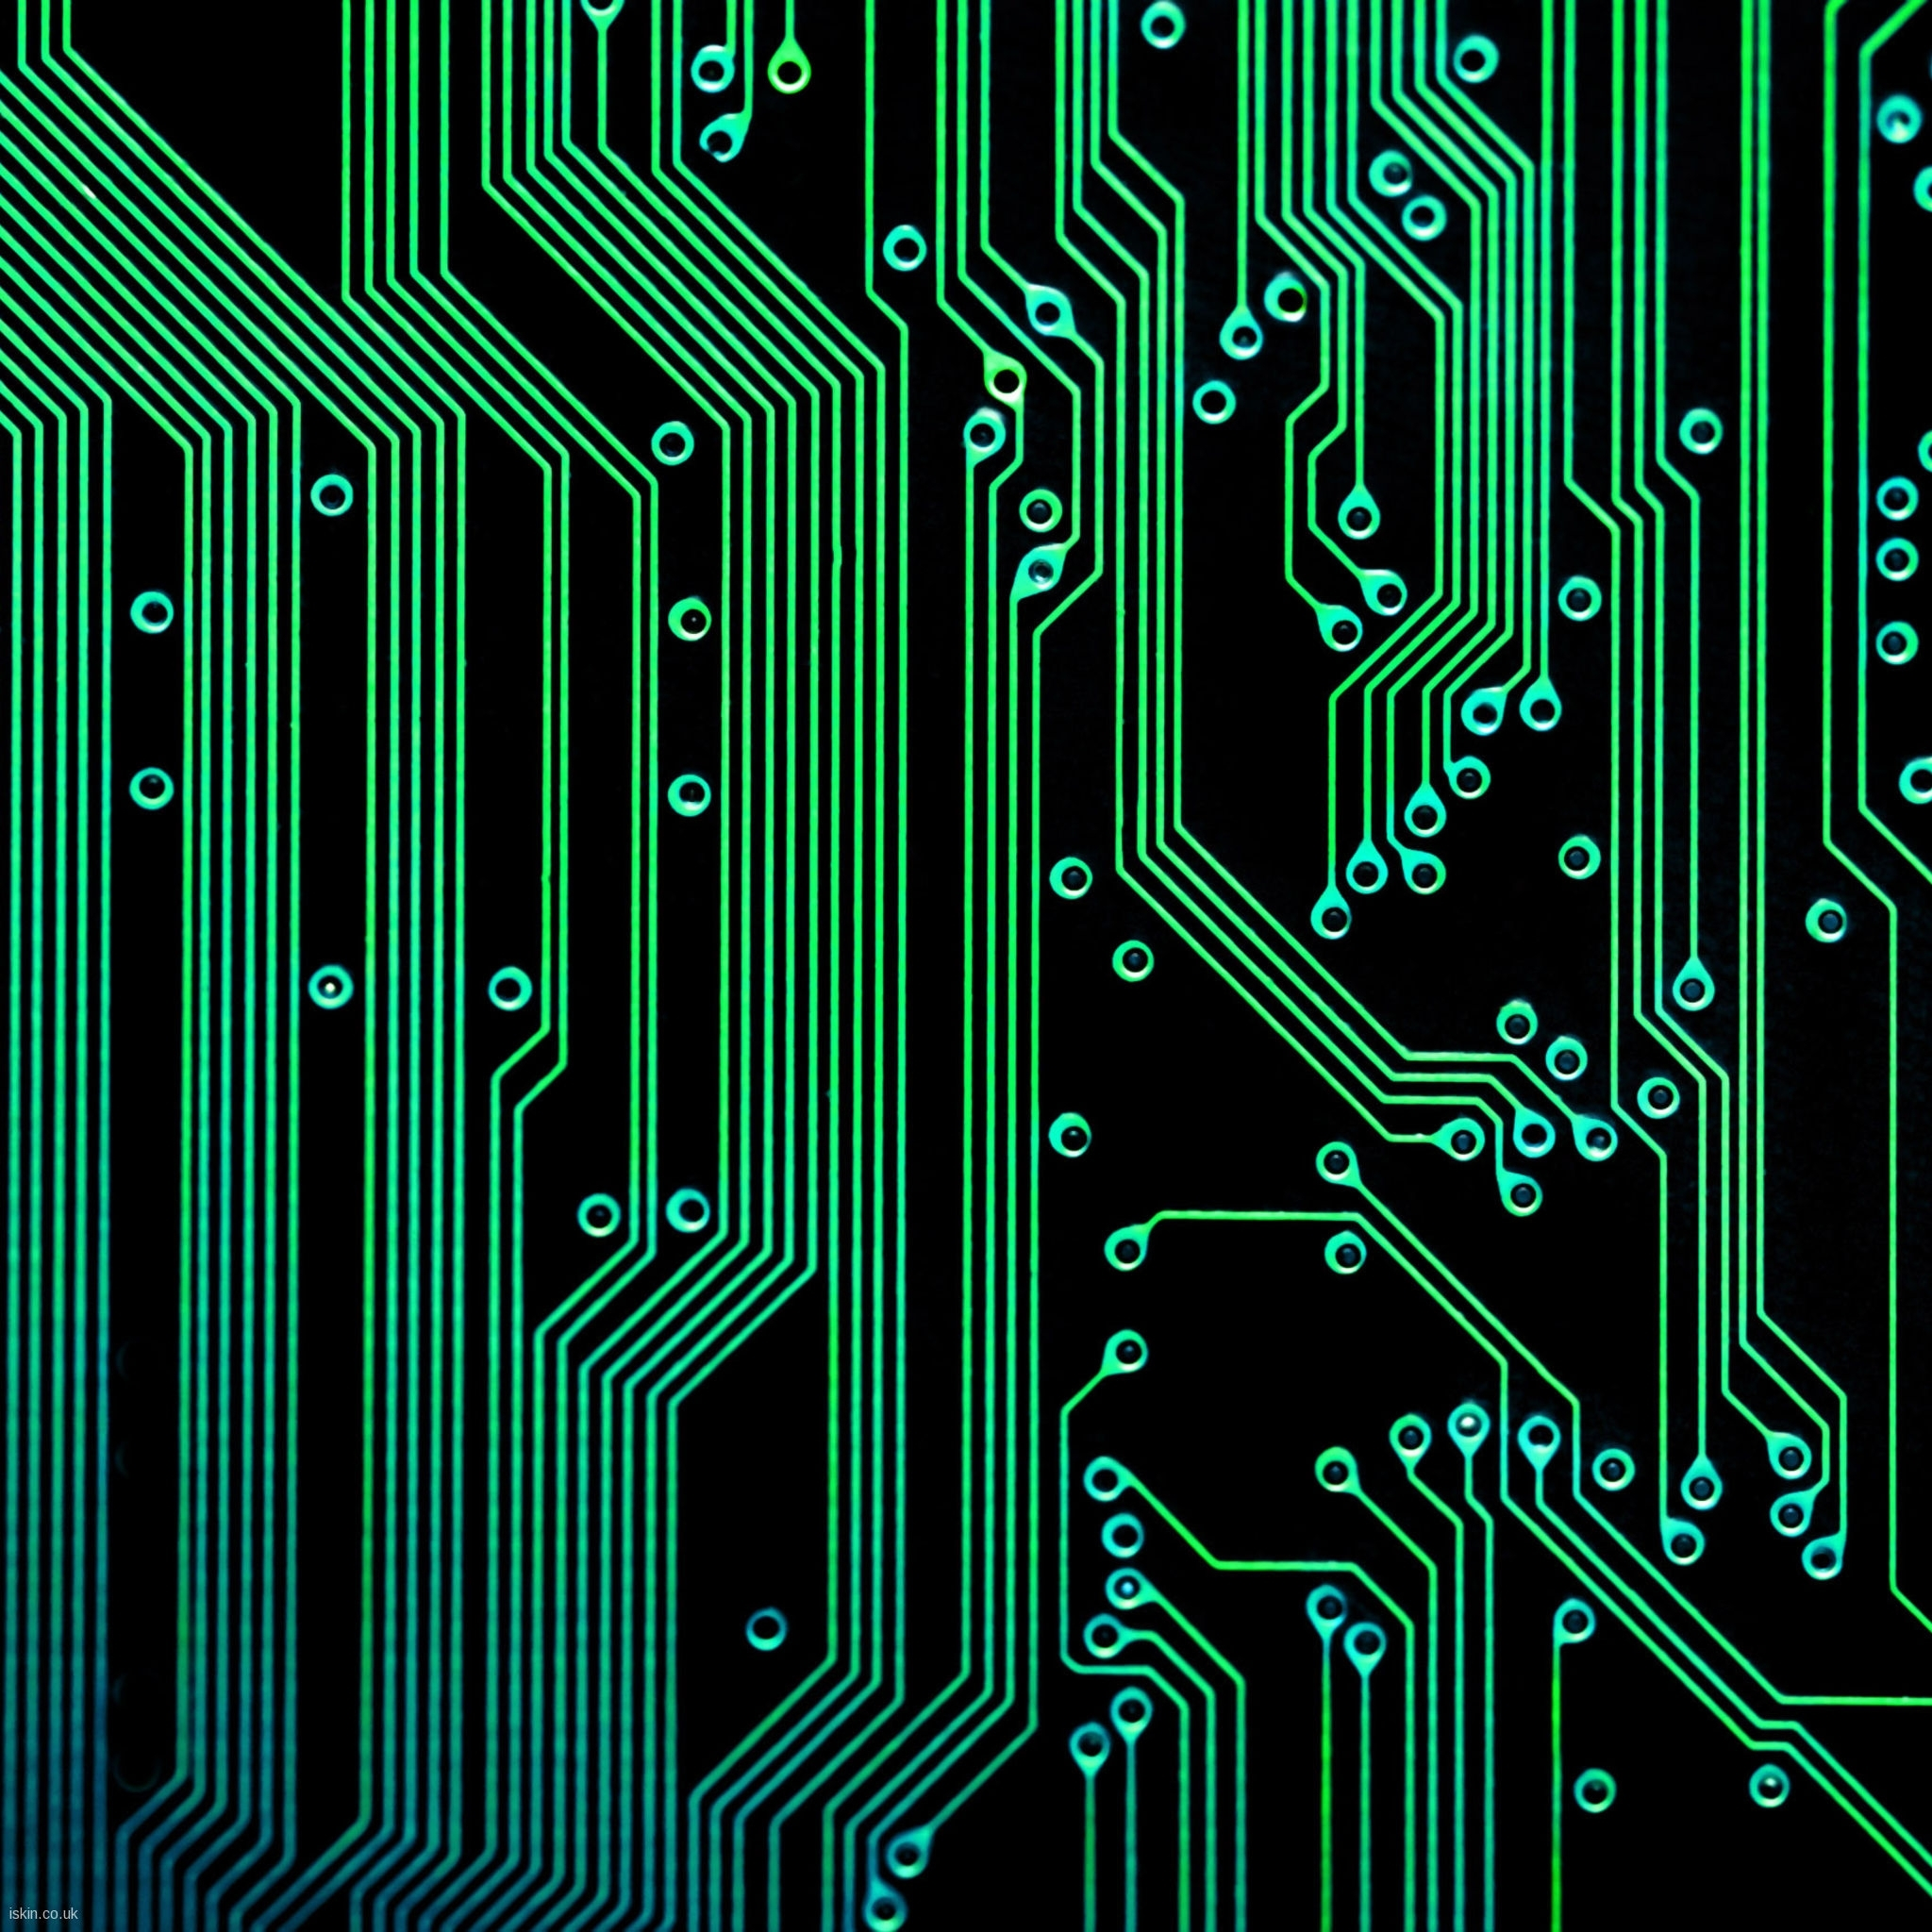 electronic circuits desktop wallpaper | iskin.co.uk | computer